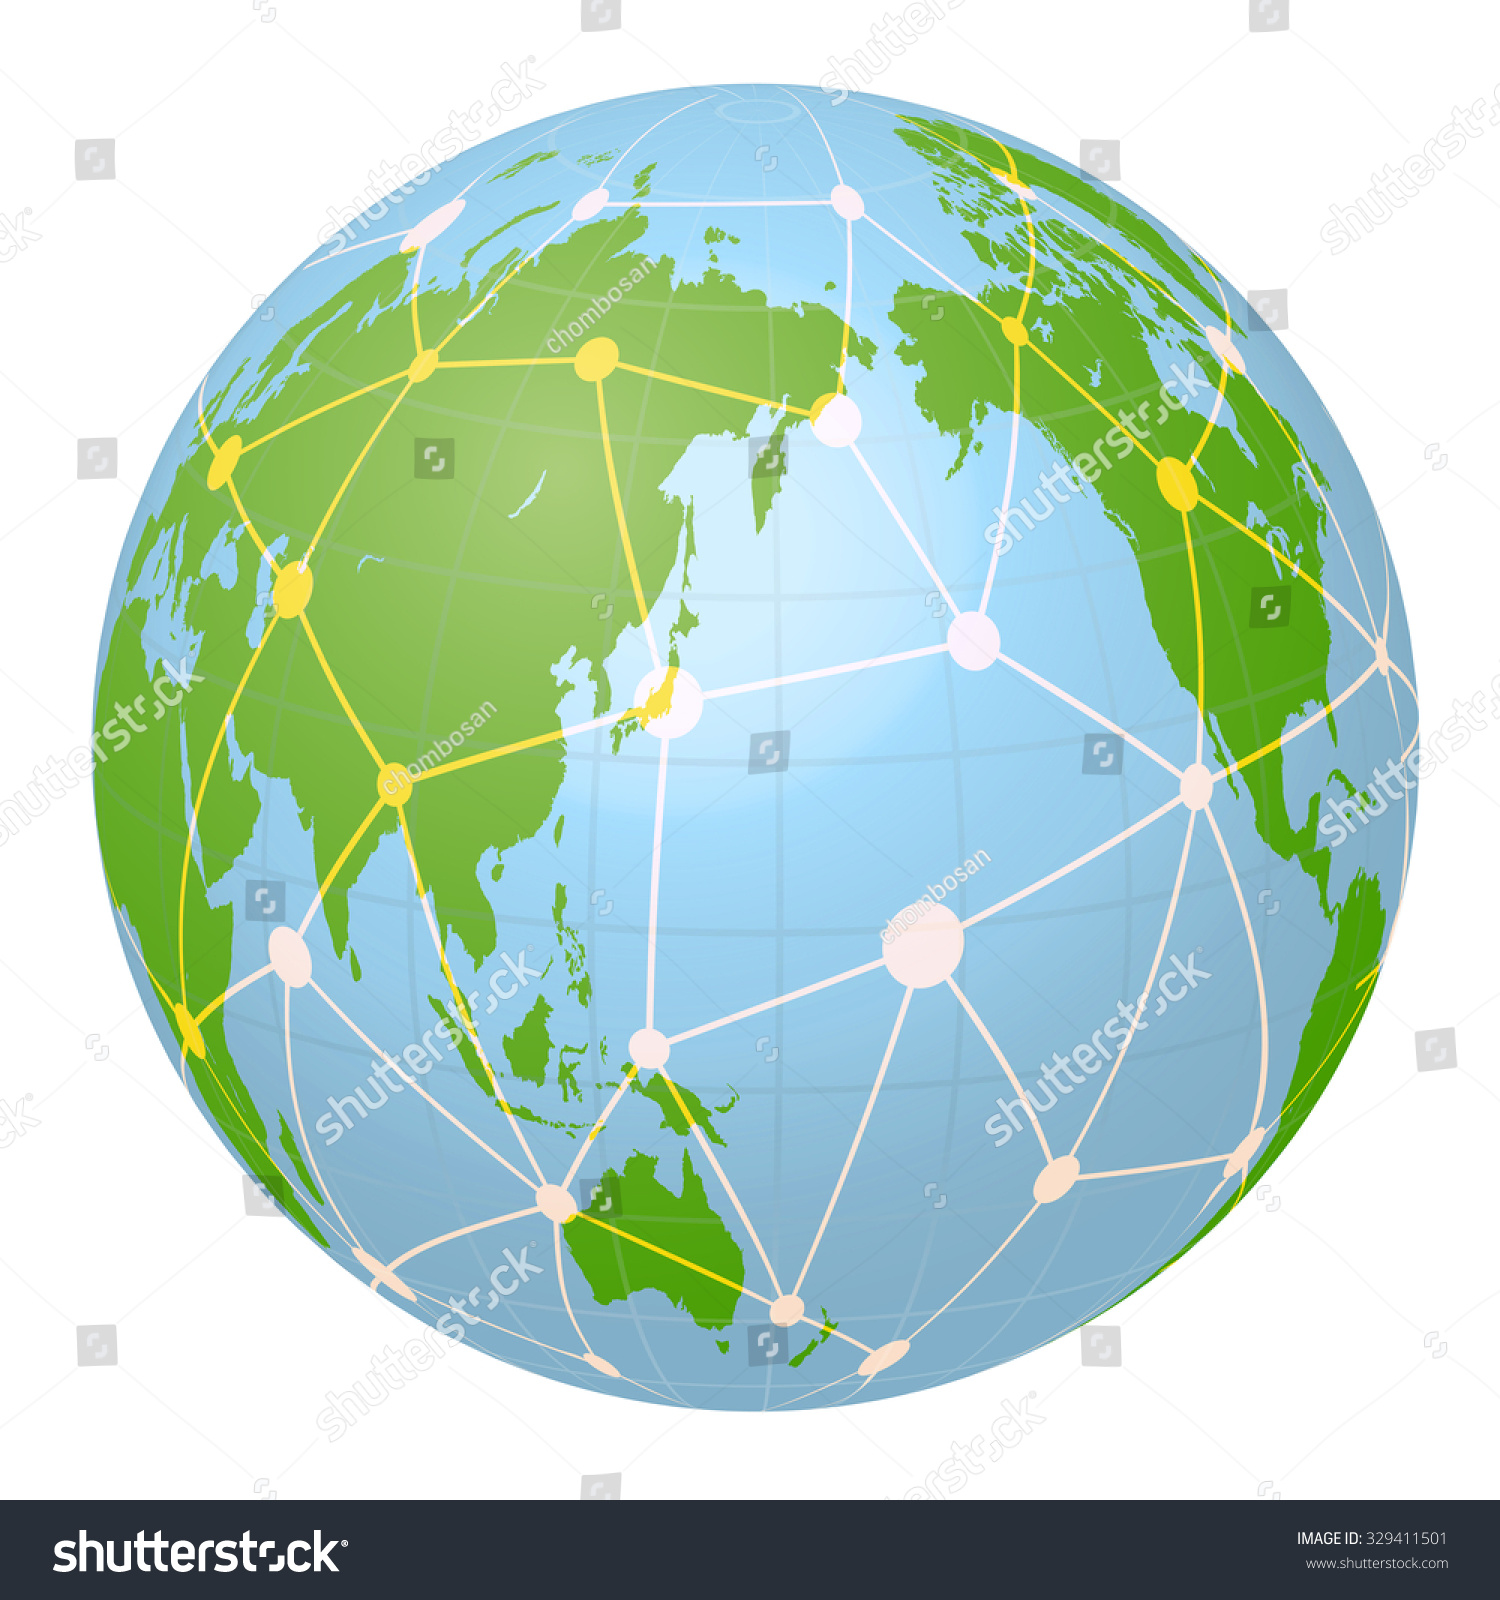 Pseudo Earth That Contains Whole World Stock Vector (Royalty ...